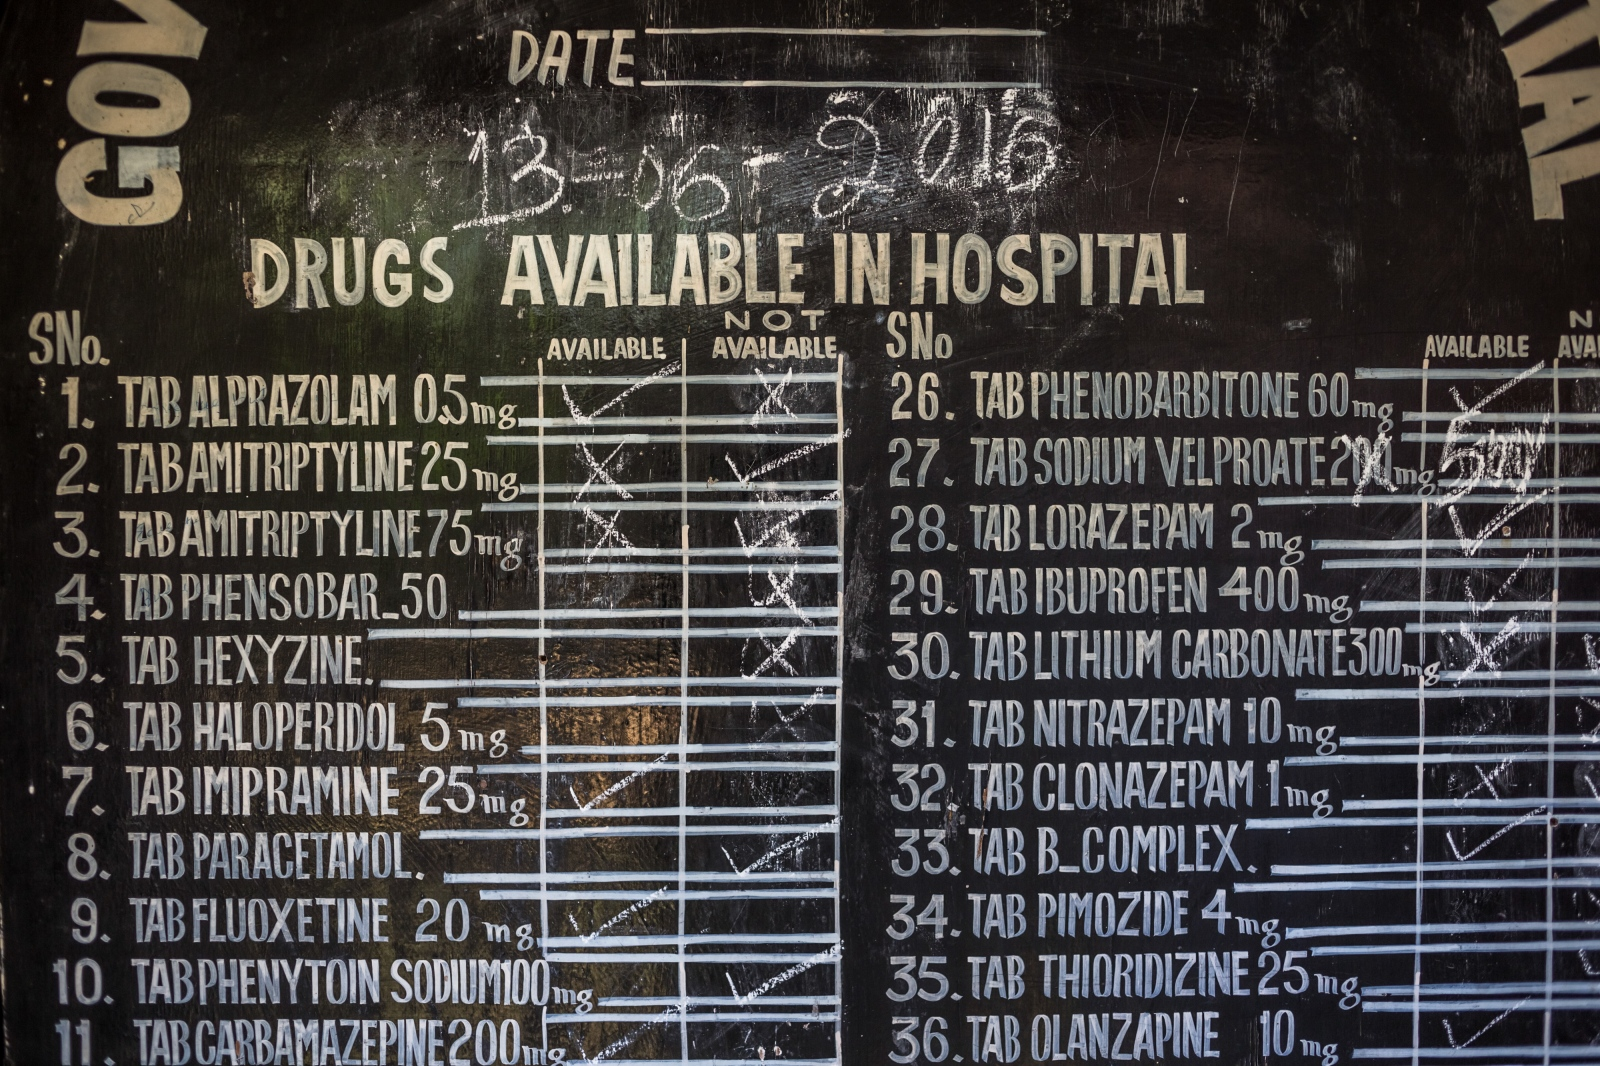 A board displays medication available at the Psychiatric Diseases Hospital in Kashmir's summer capital Srinagar on June 13, 2016.